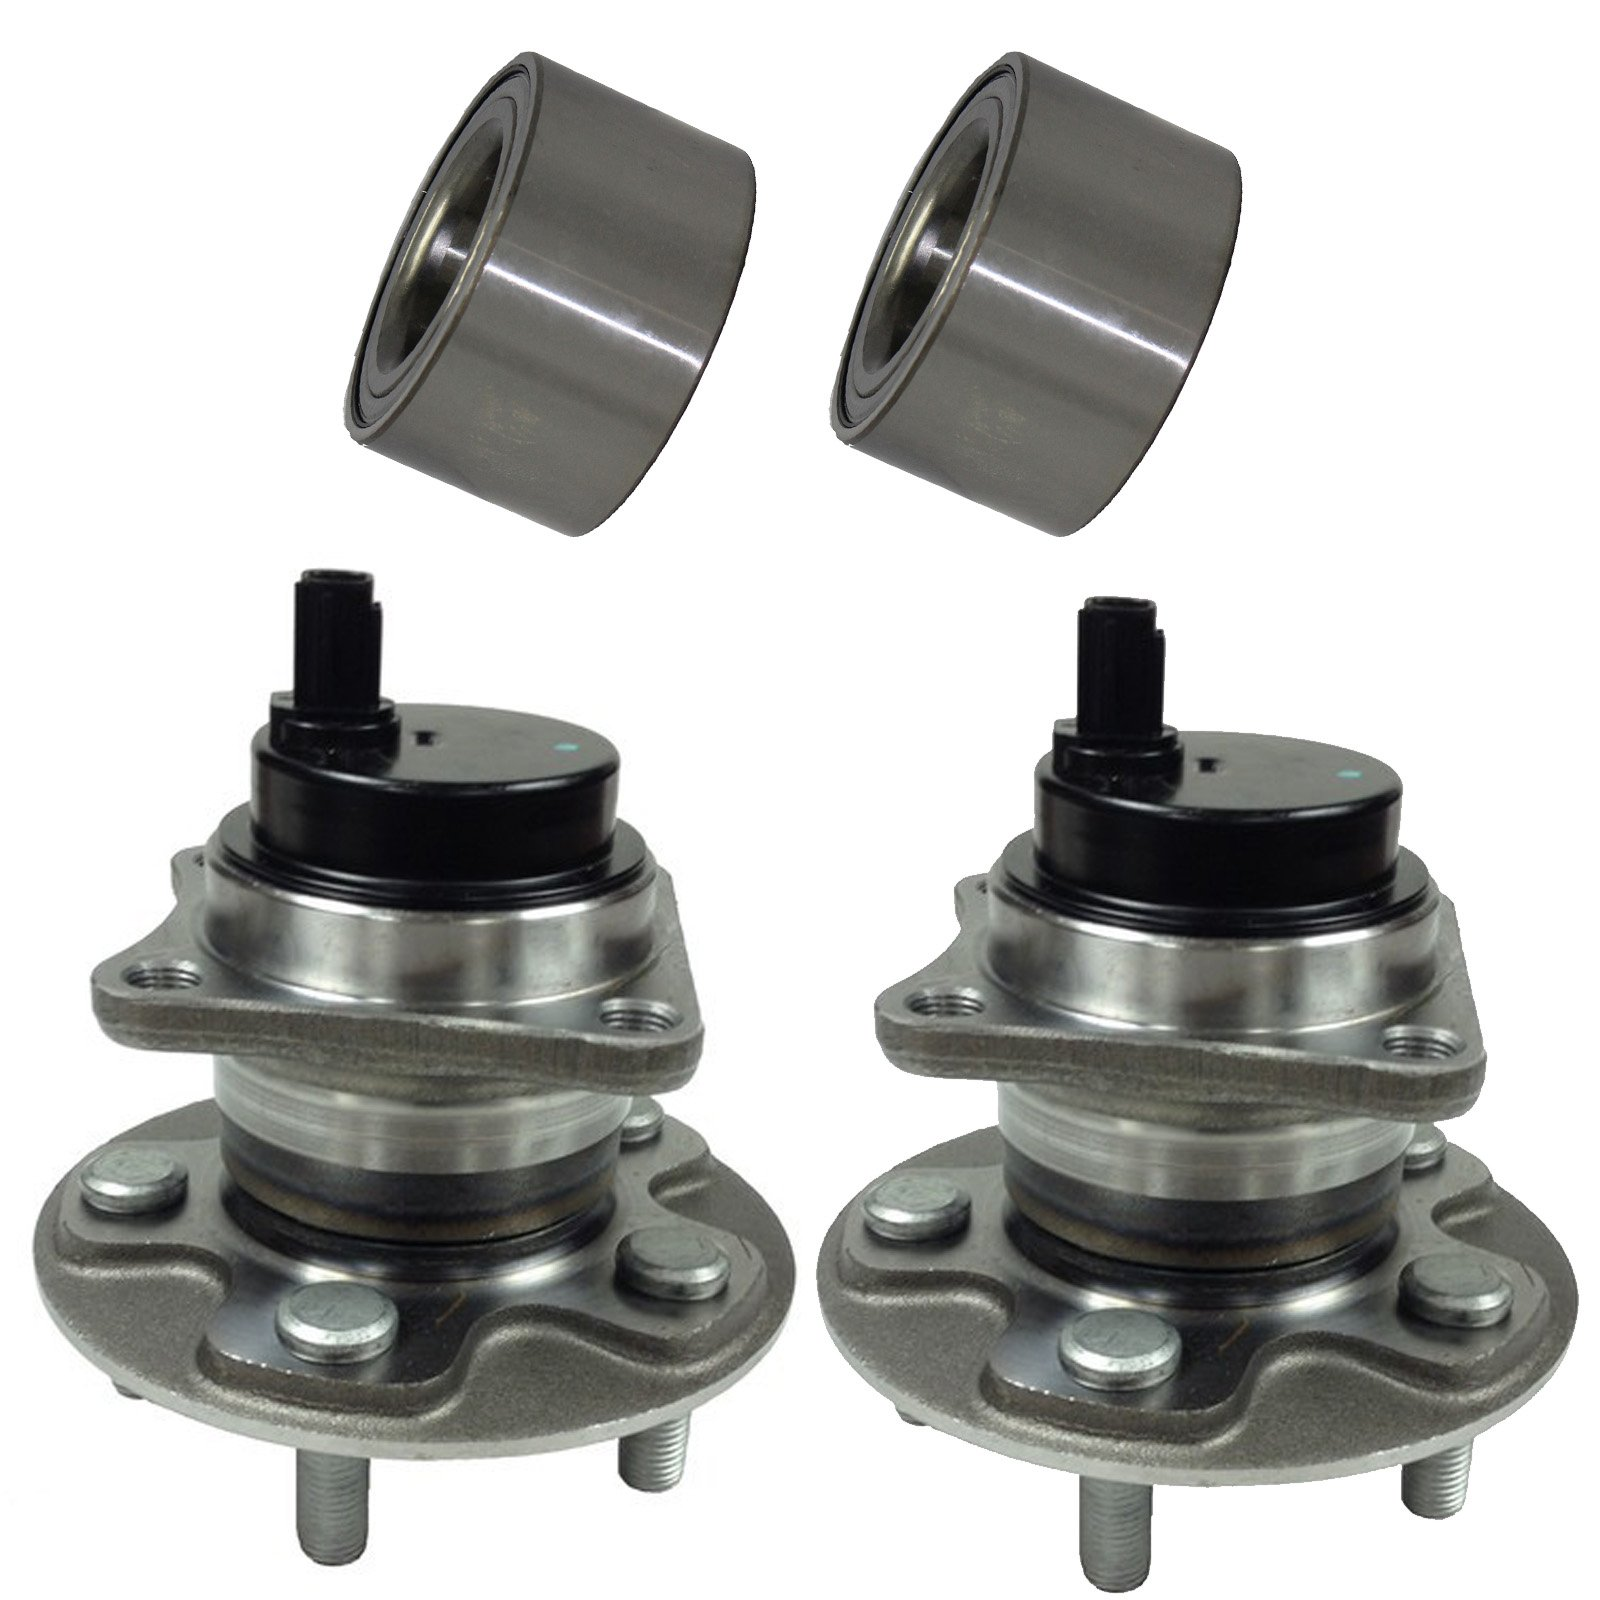 5 Lugs w//ABS 2009-2010 Ponitac Vibe FWD 1.8L 4Cyl L DRIVESTAR 512403 FWD Rear Wheel Hub /& Bearing Assembly for Toyota Corolla 2009-2016 2009-2014 for Toyota Matrix FWD 1.8L 5Cyl L